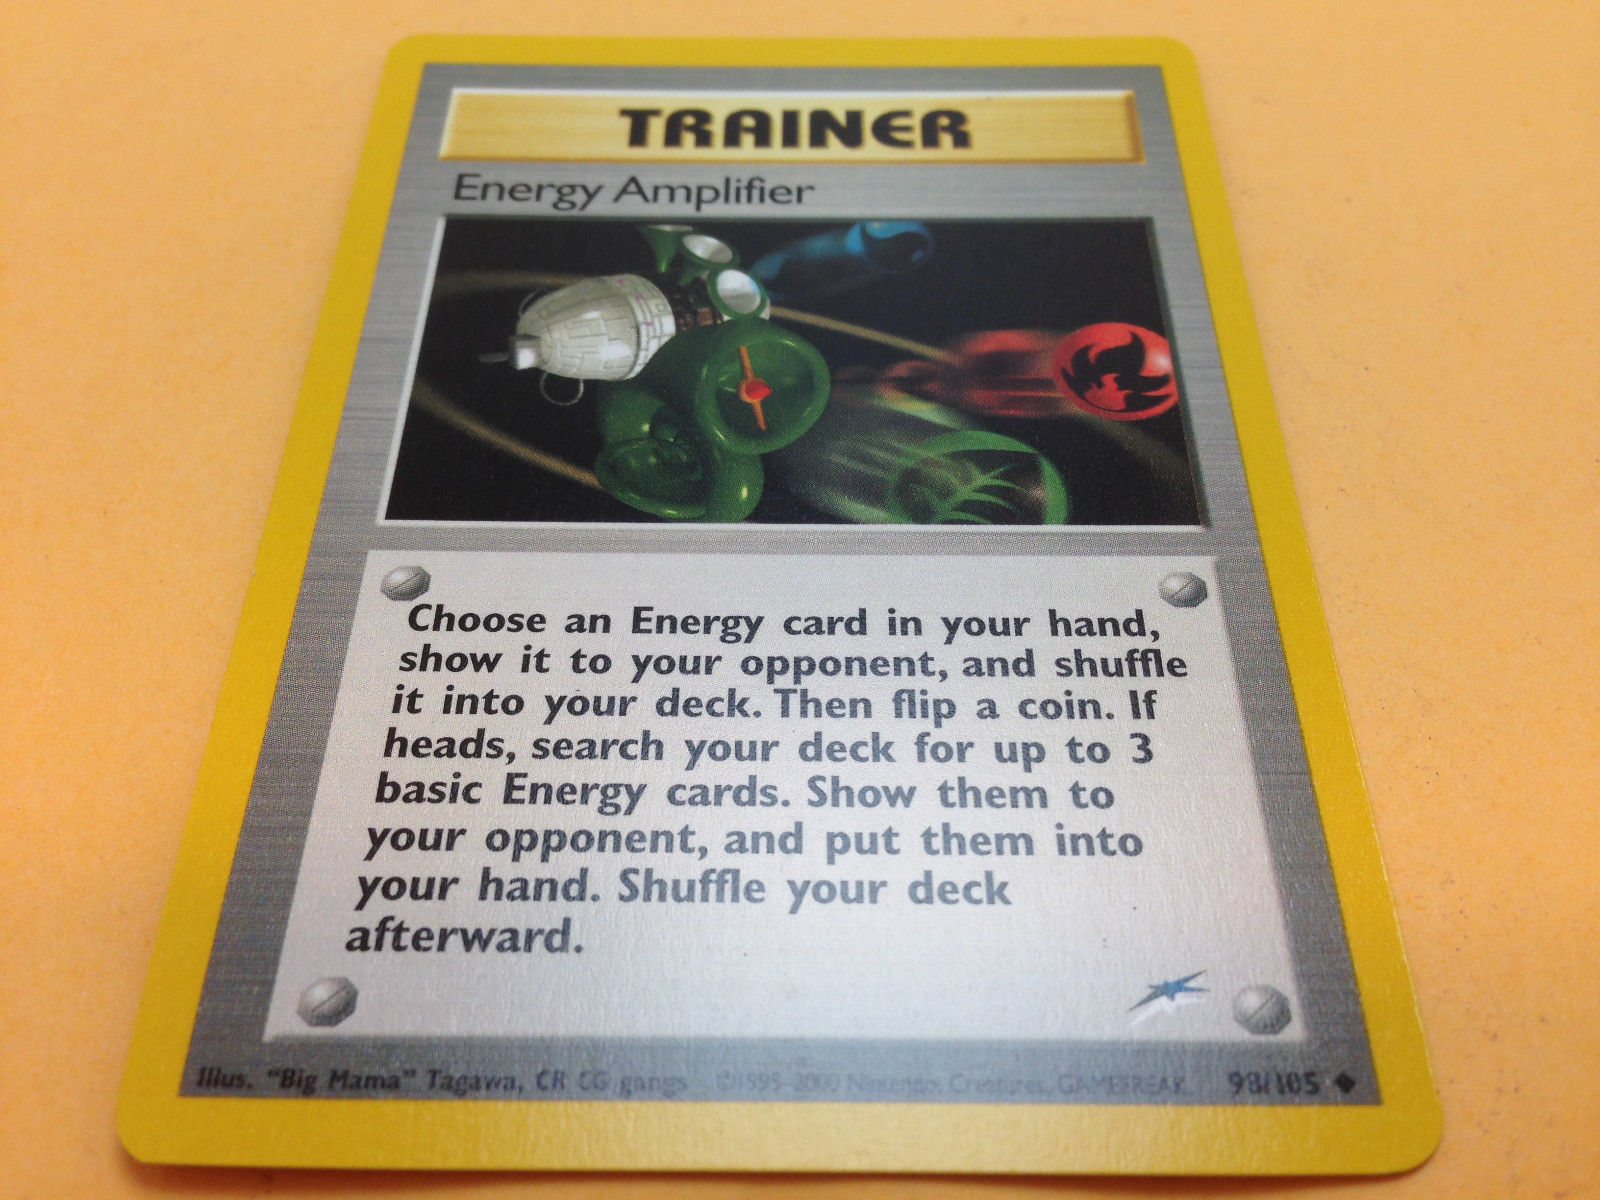 Energy Amplifier 98//105 Neo Destiny Set TRAINER Pokemon Card NEAR MINT